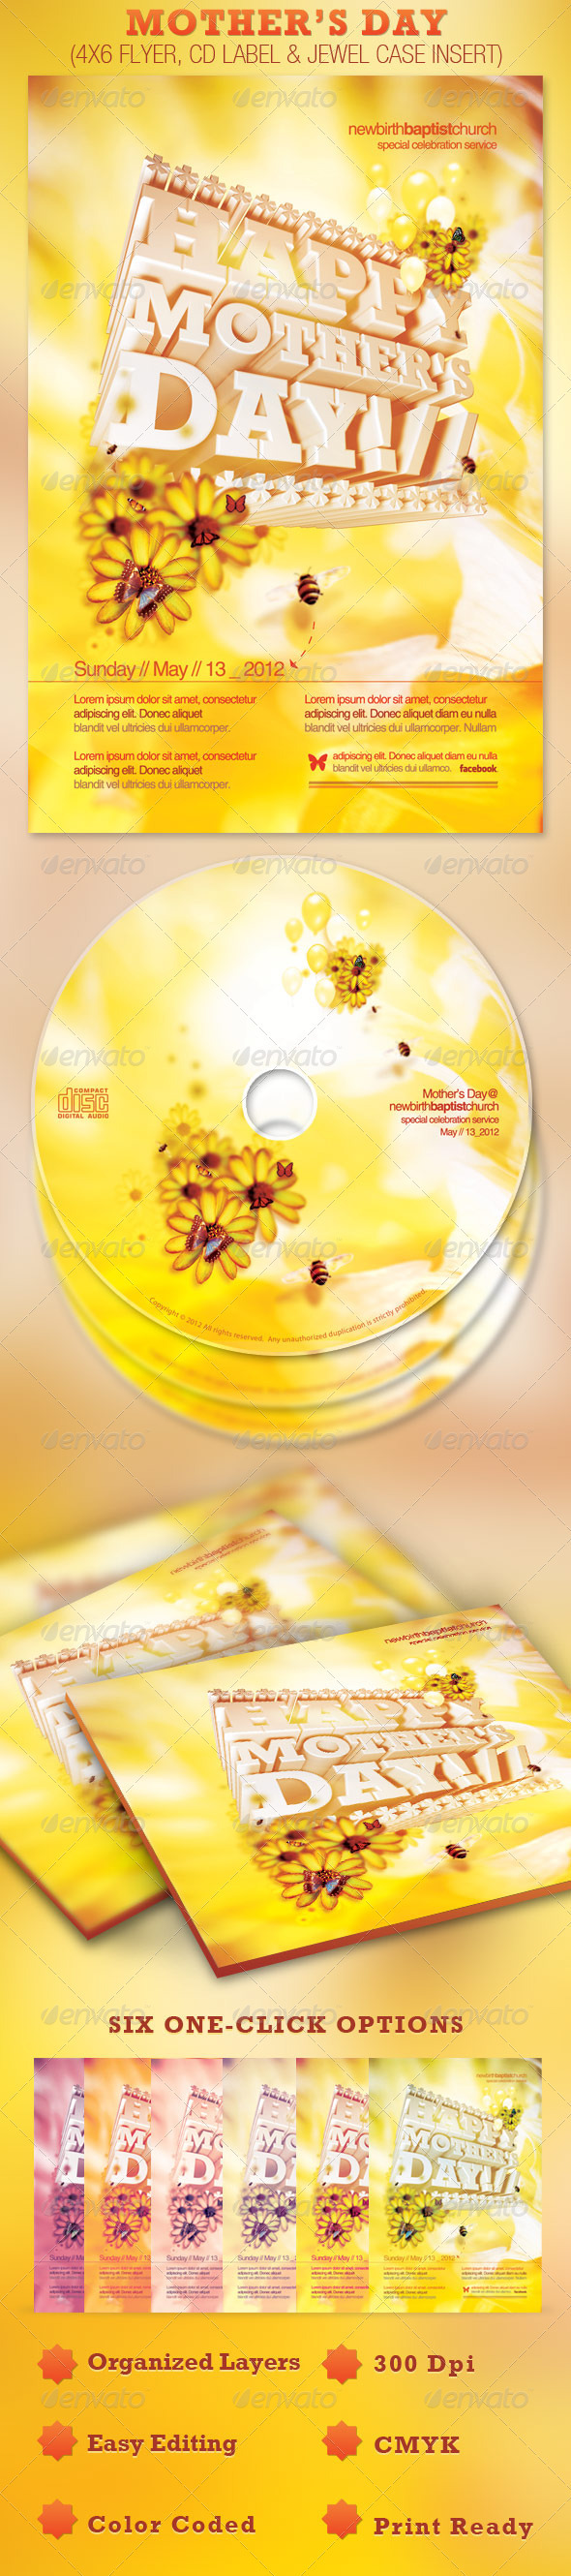 Mother's Day Church Flyer and CD Template - Church Flyers